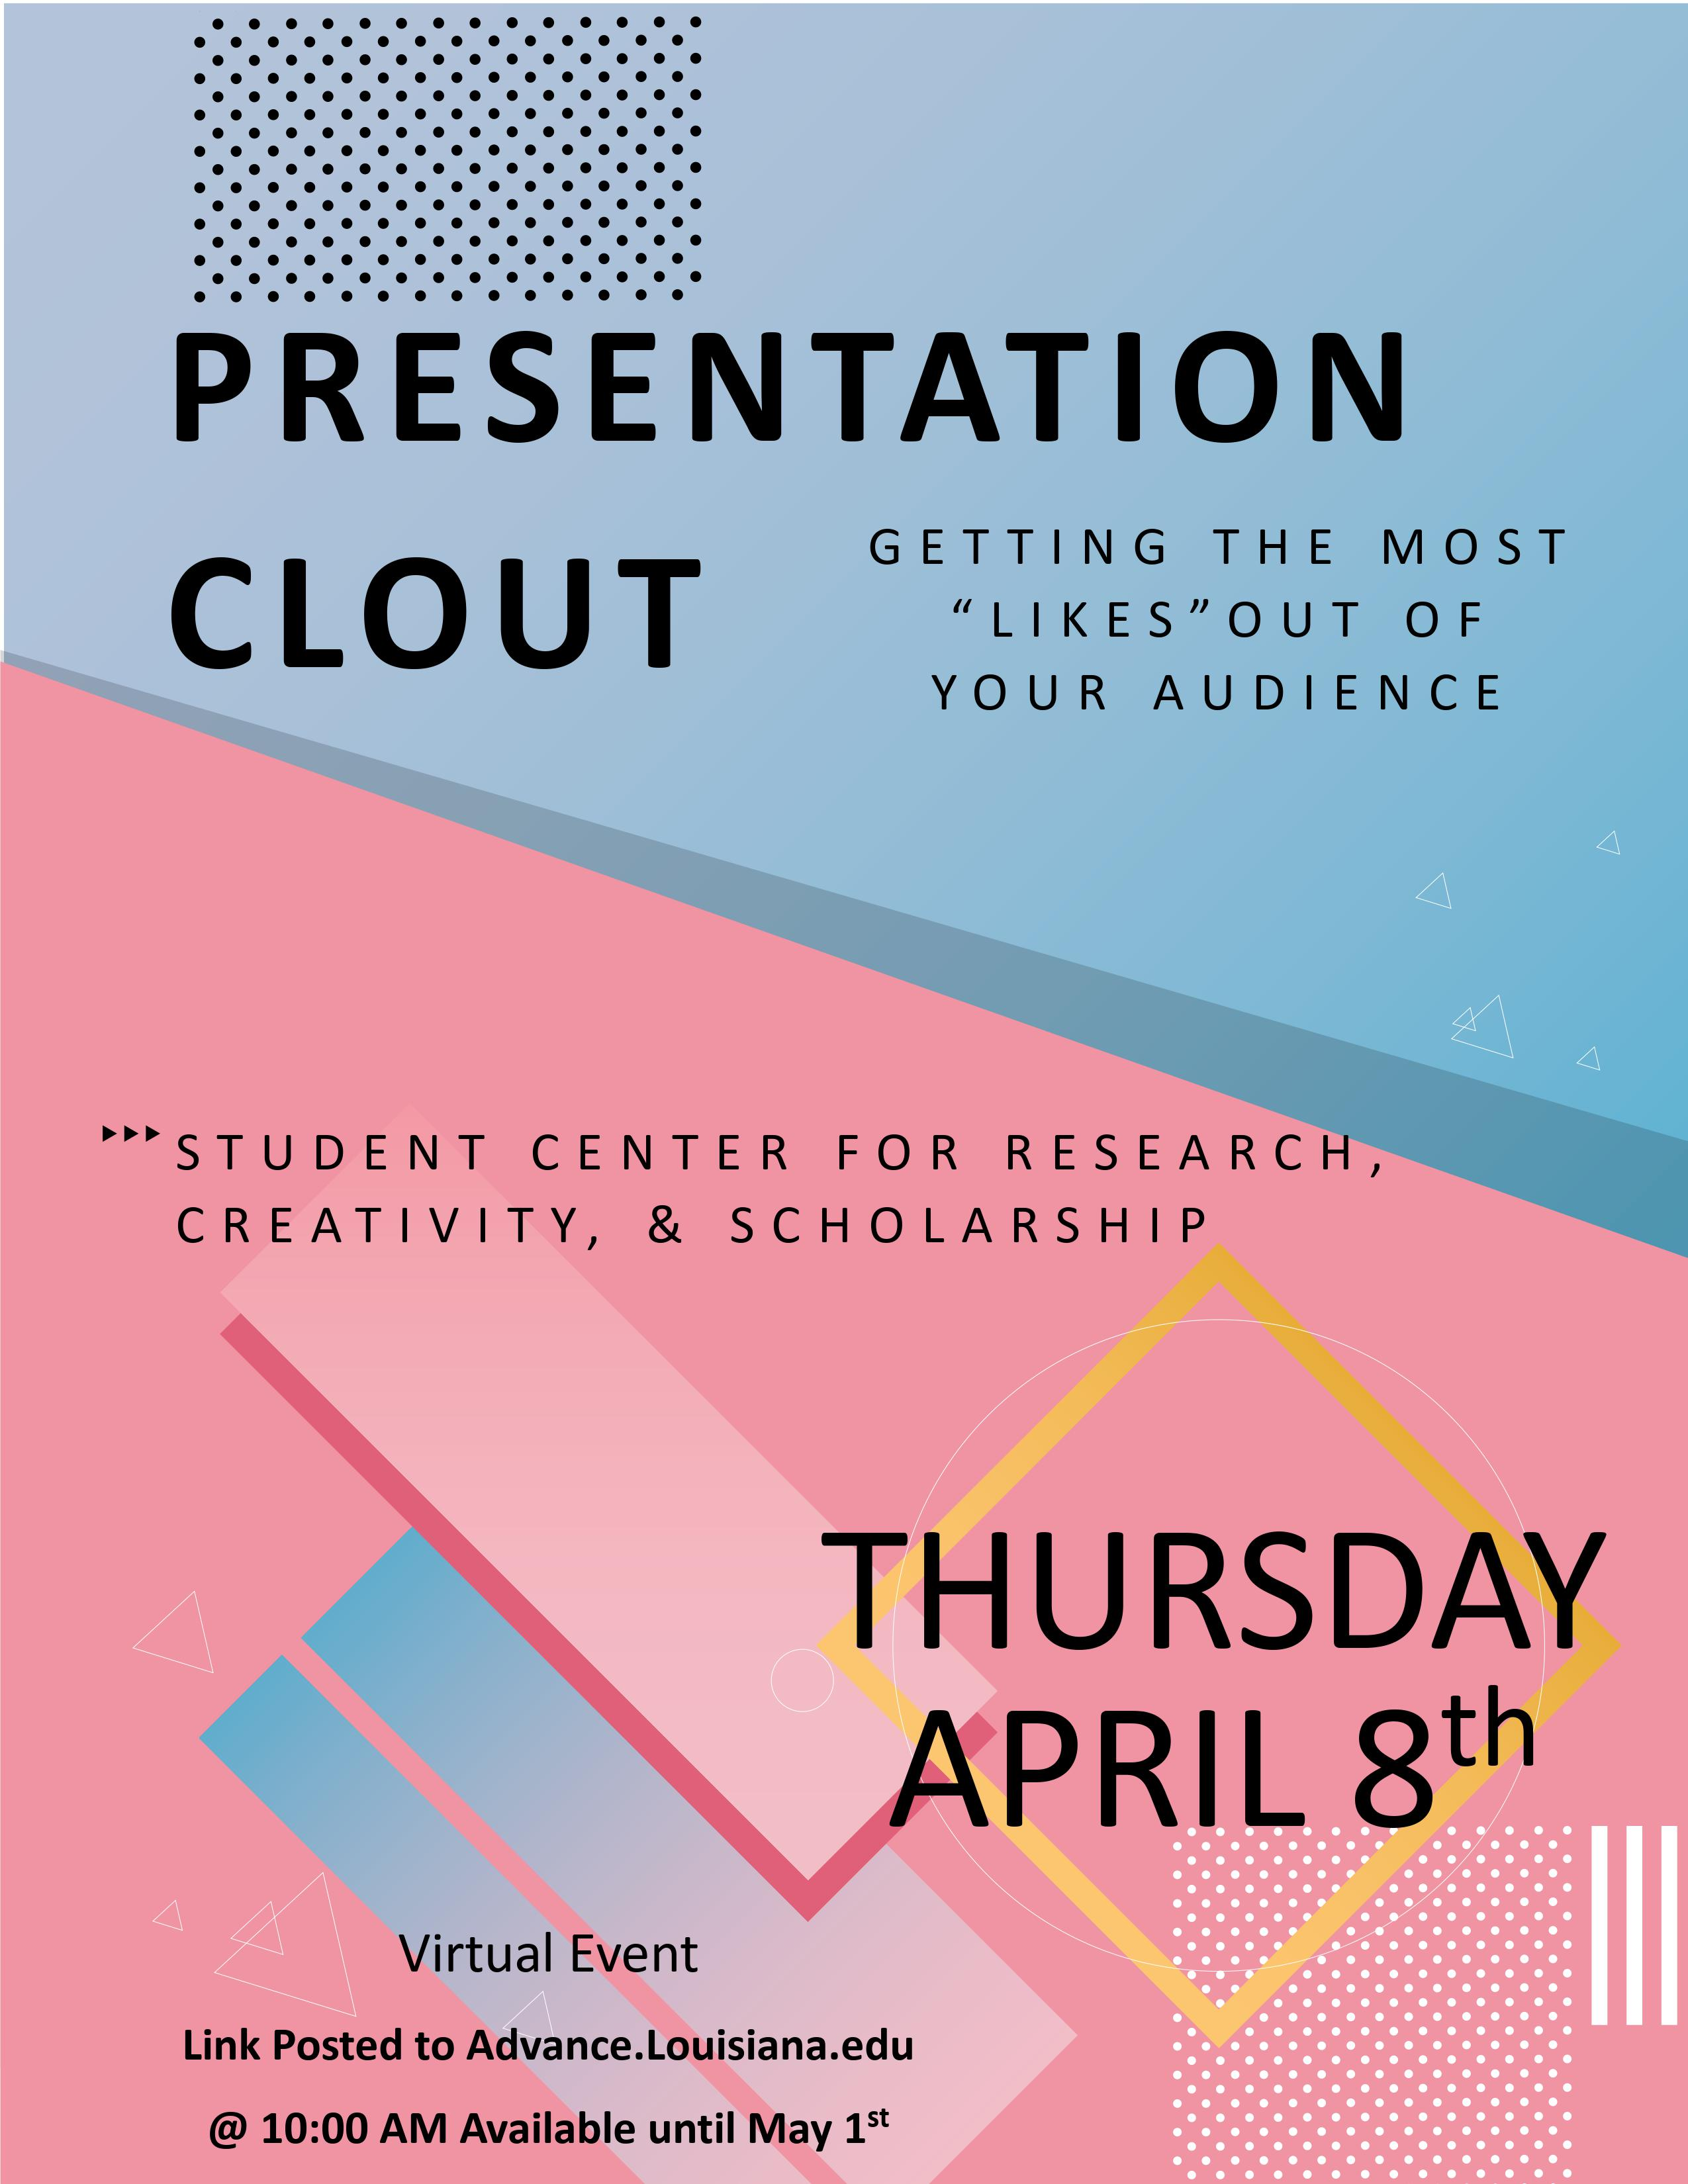 """PRESENTATION CLOUT: GETTING THE MOST  """"LIKES"""" OUT OF  YOUR AUDIENCE, will be held on Thursday April 8th, 2021, It is a virtual event. For more details please email to advance@louisiana.edu"""